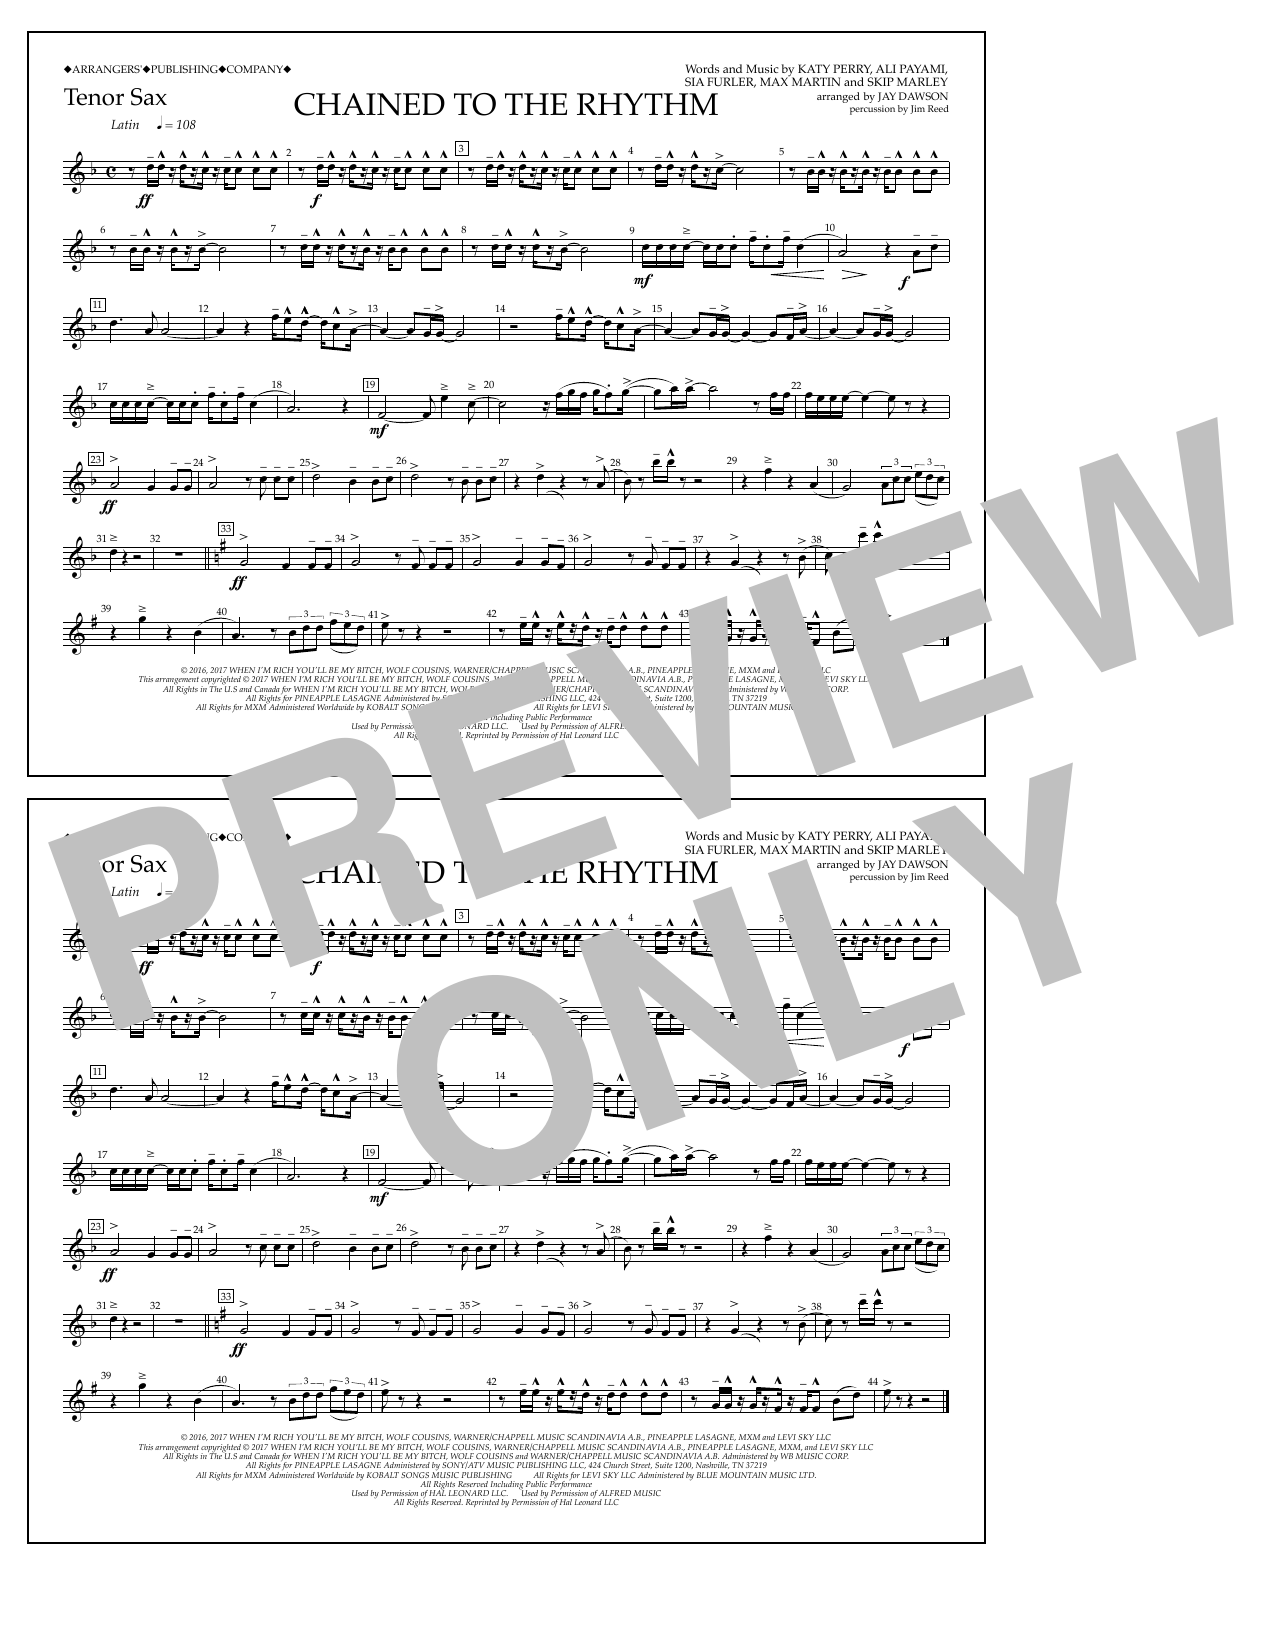 Chained to the Rhythm - Tenor Sax Sheet Music